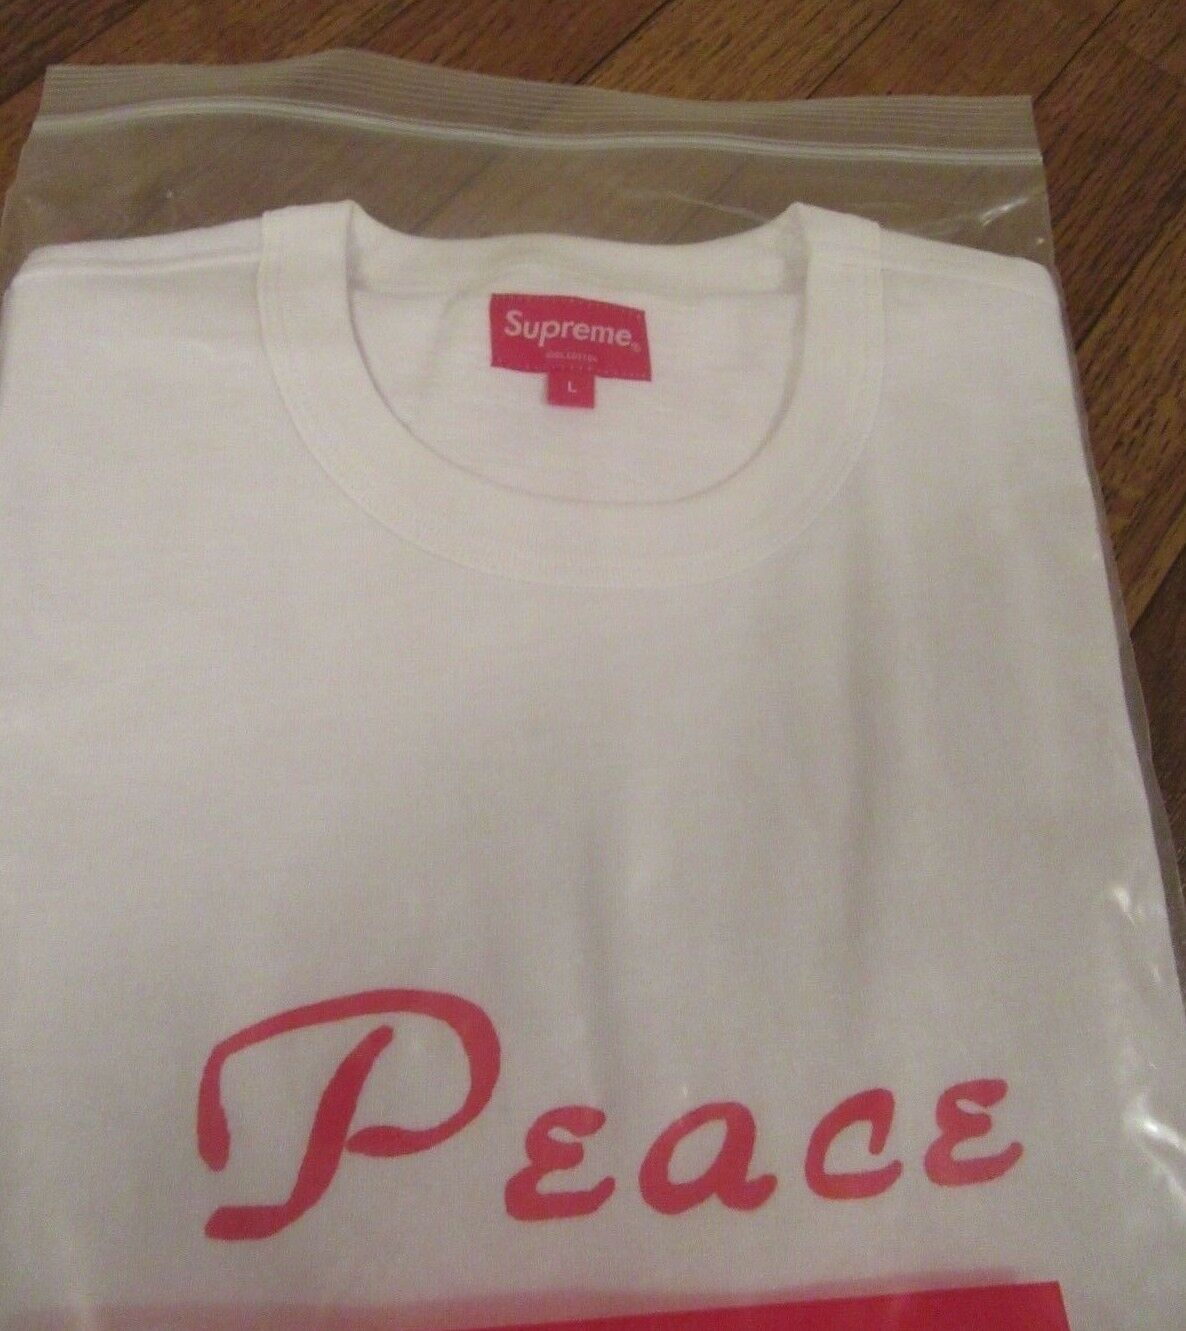 Supreme Peace S/S Top Größe Large Weiß FW18KN69 FW18 Supreme New York 2018 NEW